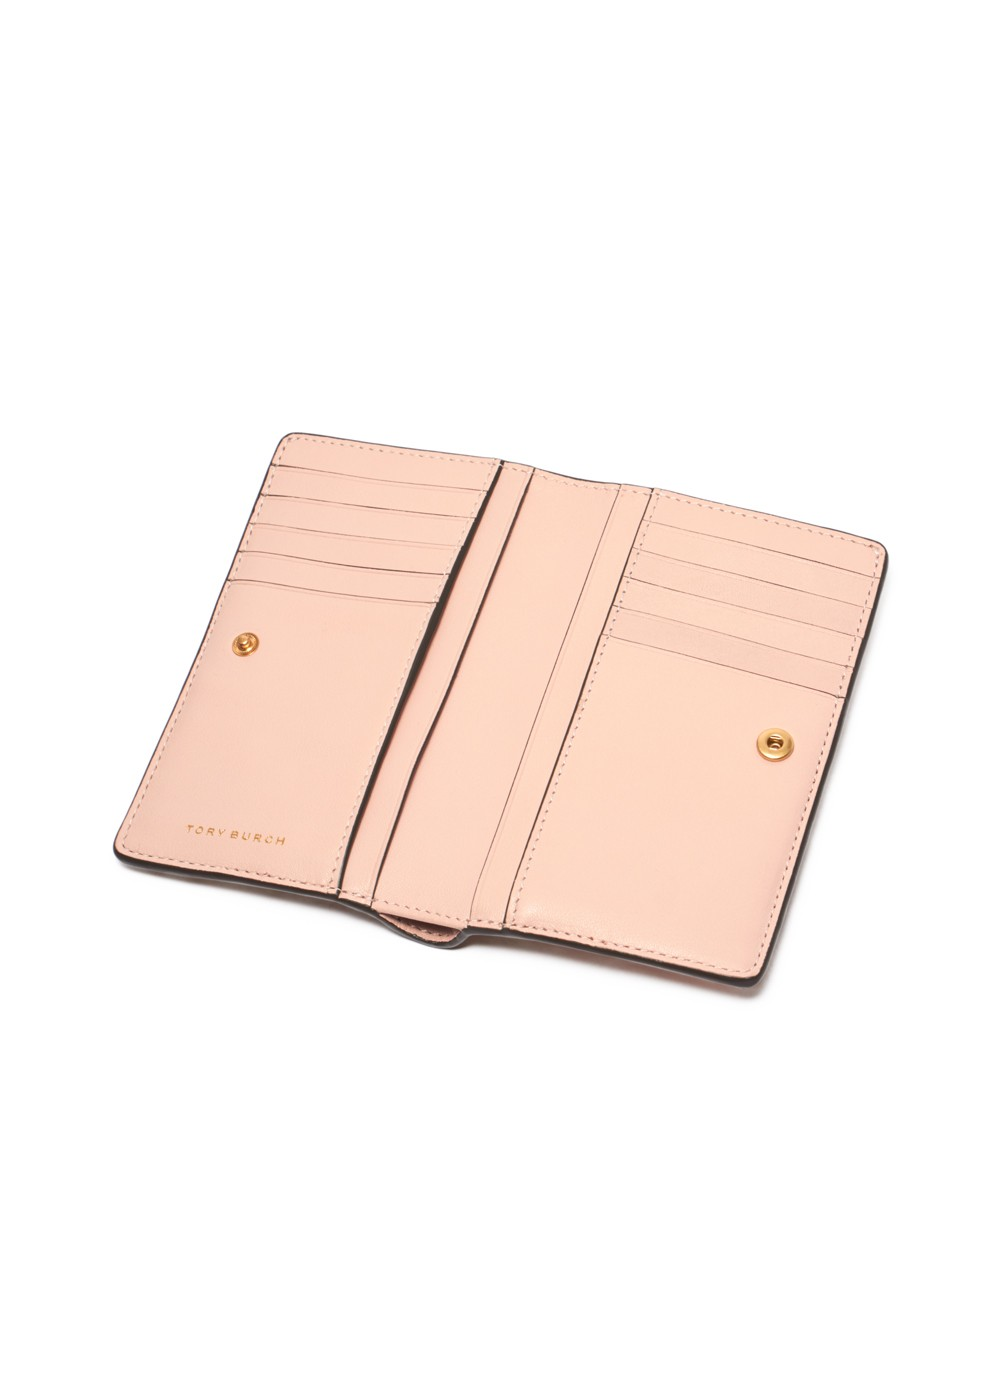 TORY BURCH|トリバーチ|GEORGIA|ジョージア|METALLIC MEDIUM WALLET